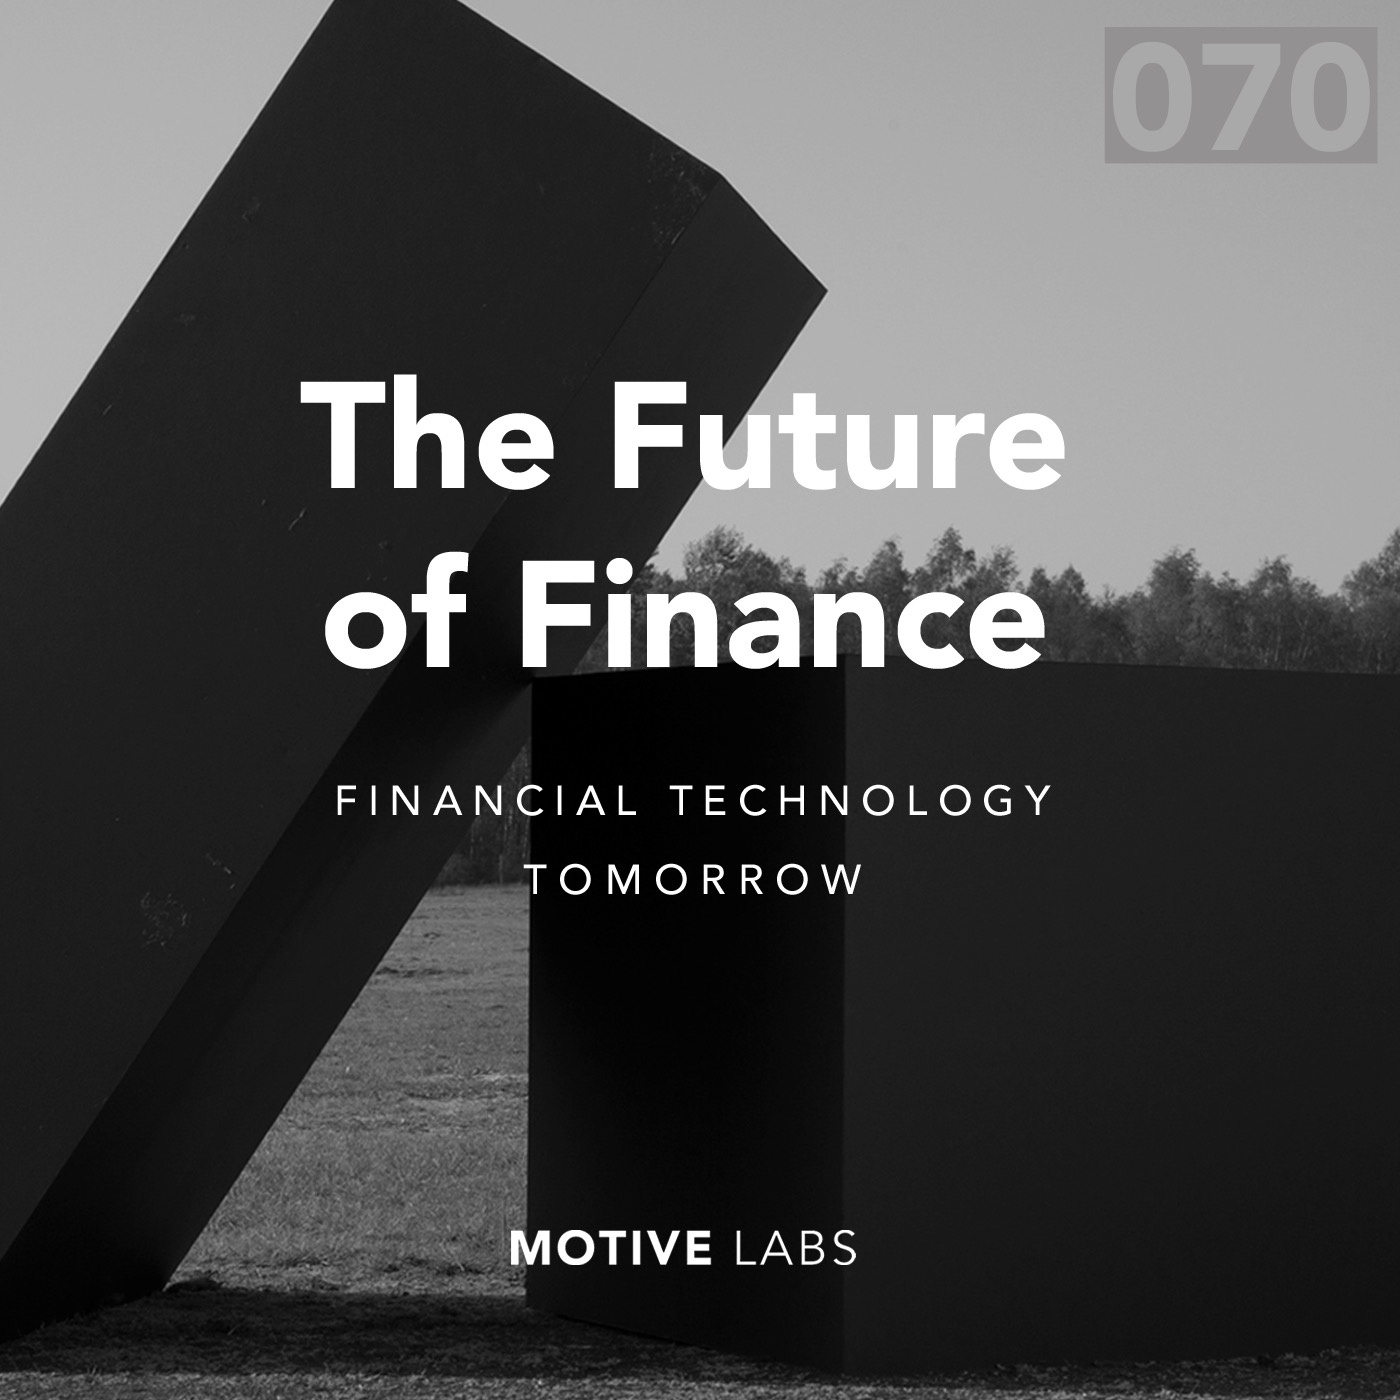 070 - Christoph Kanneberger, early stage novel deep financial technologies